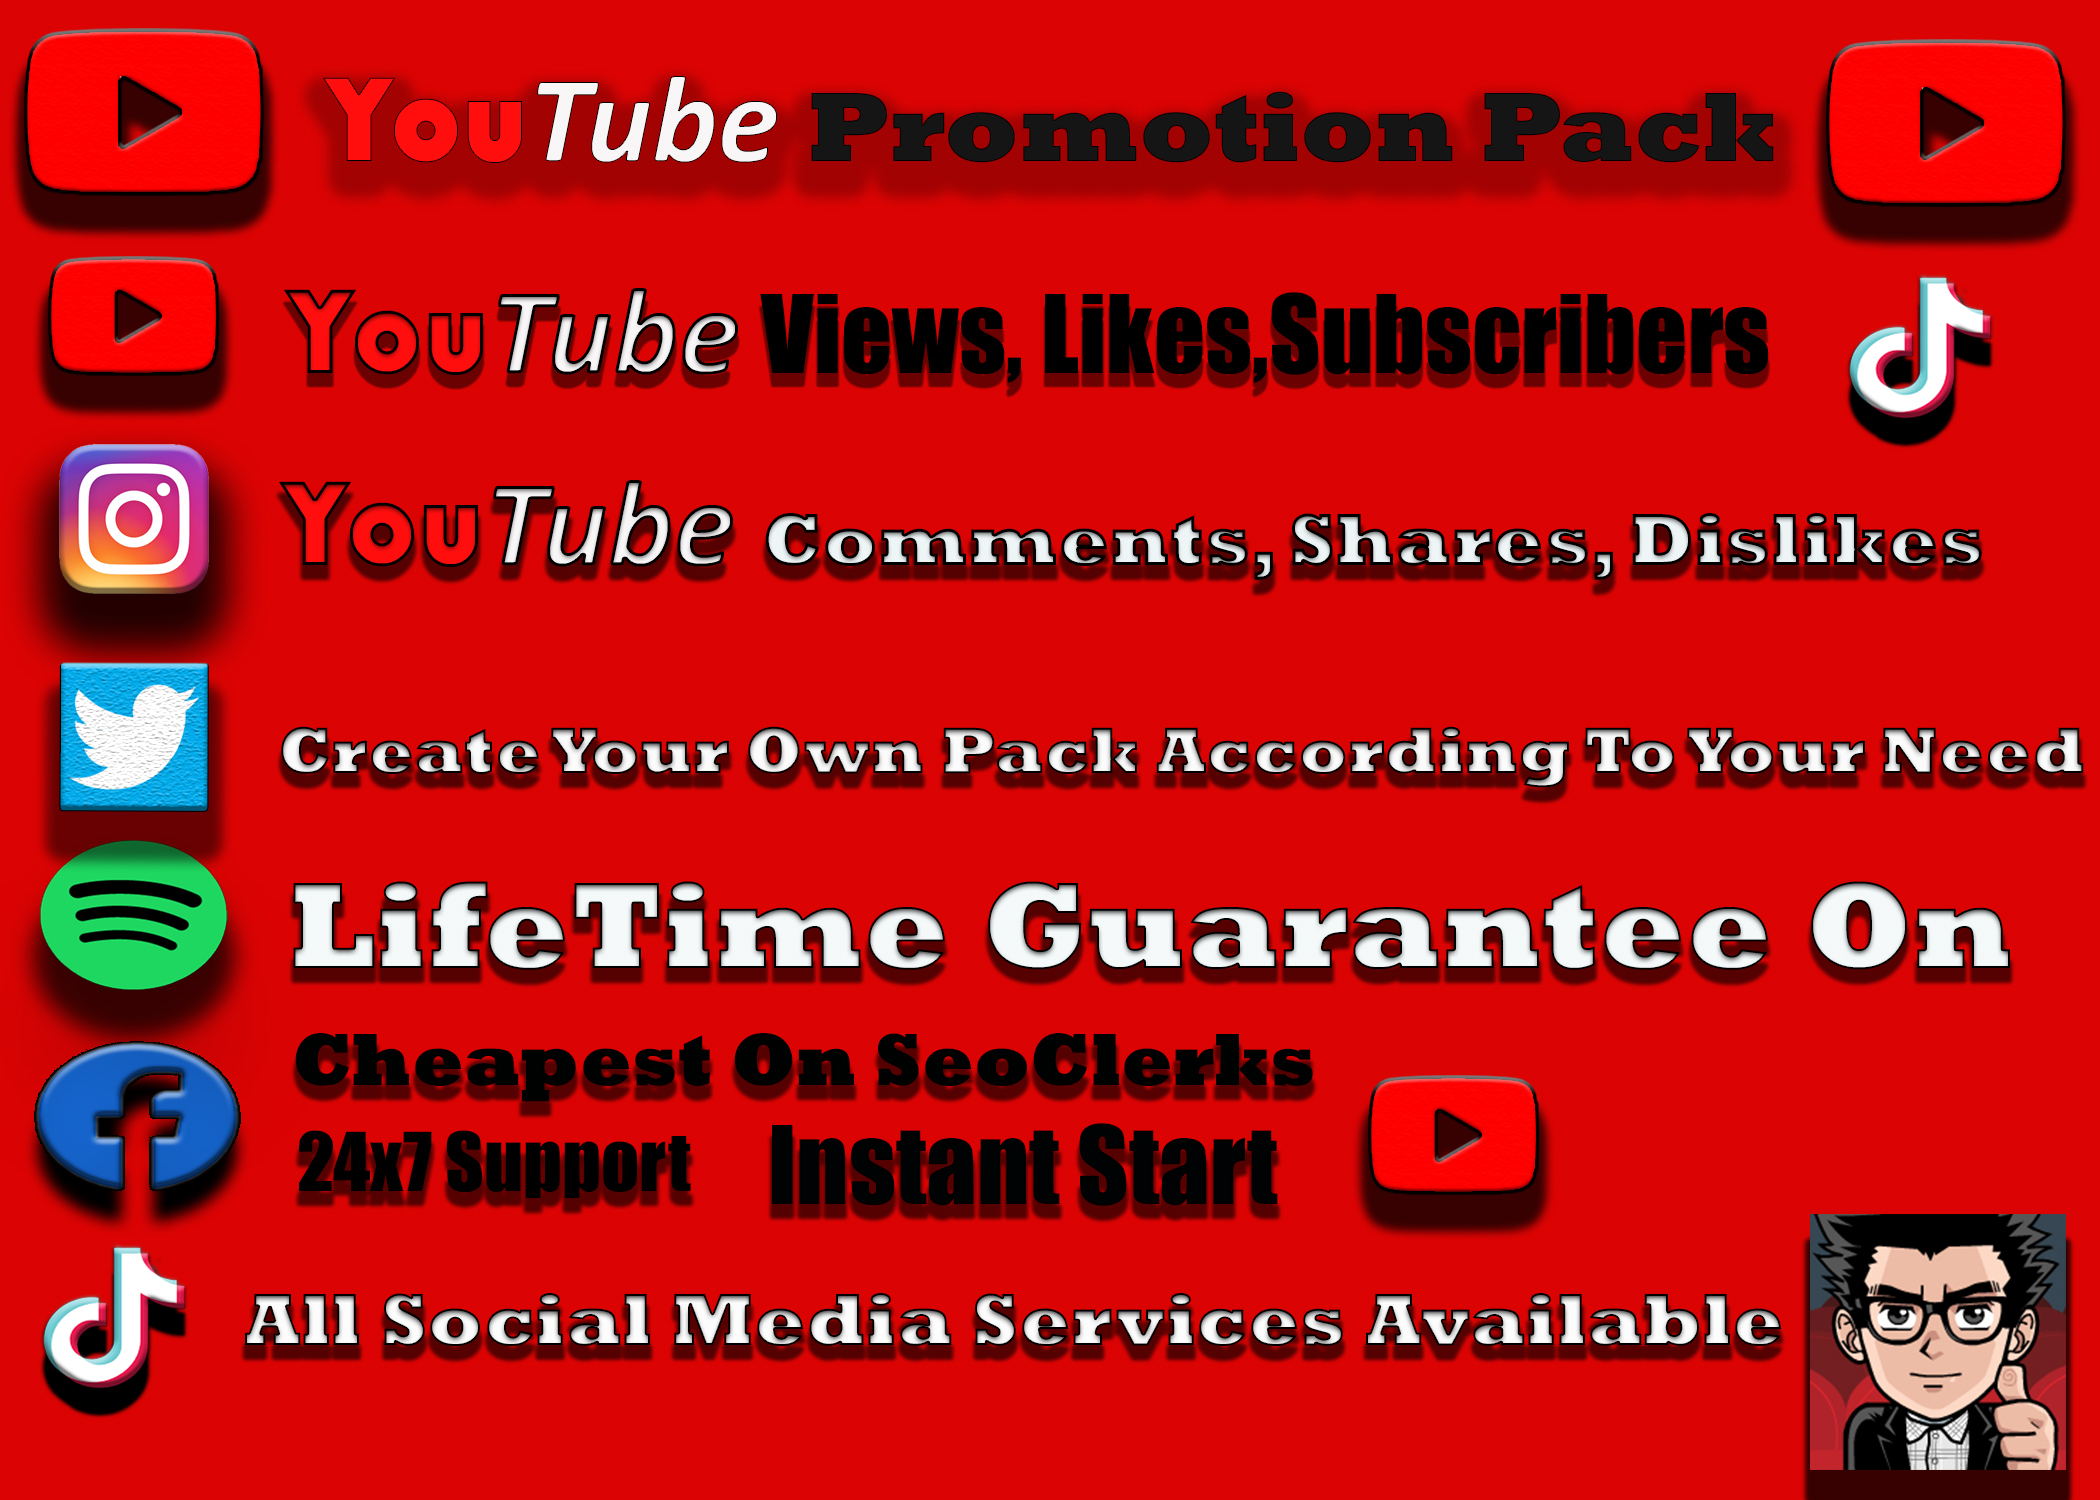 Organic YouTube Video Promotions. 5k 12-24 hr Delivery Non drop